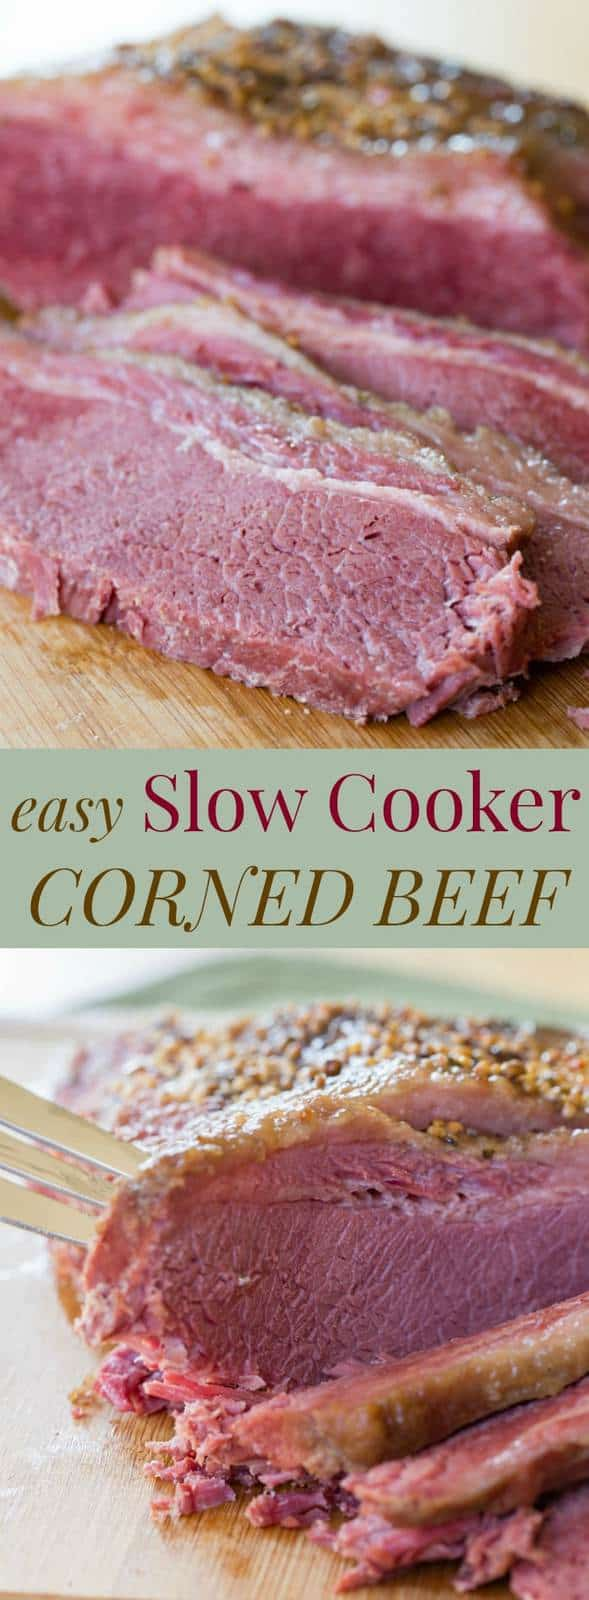 Easy Slow Cooker Corned Beef - Cupcakes & Kale Chips